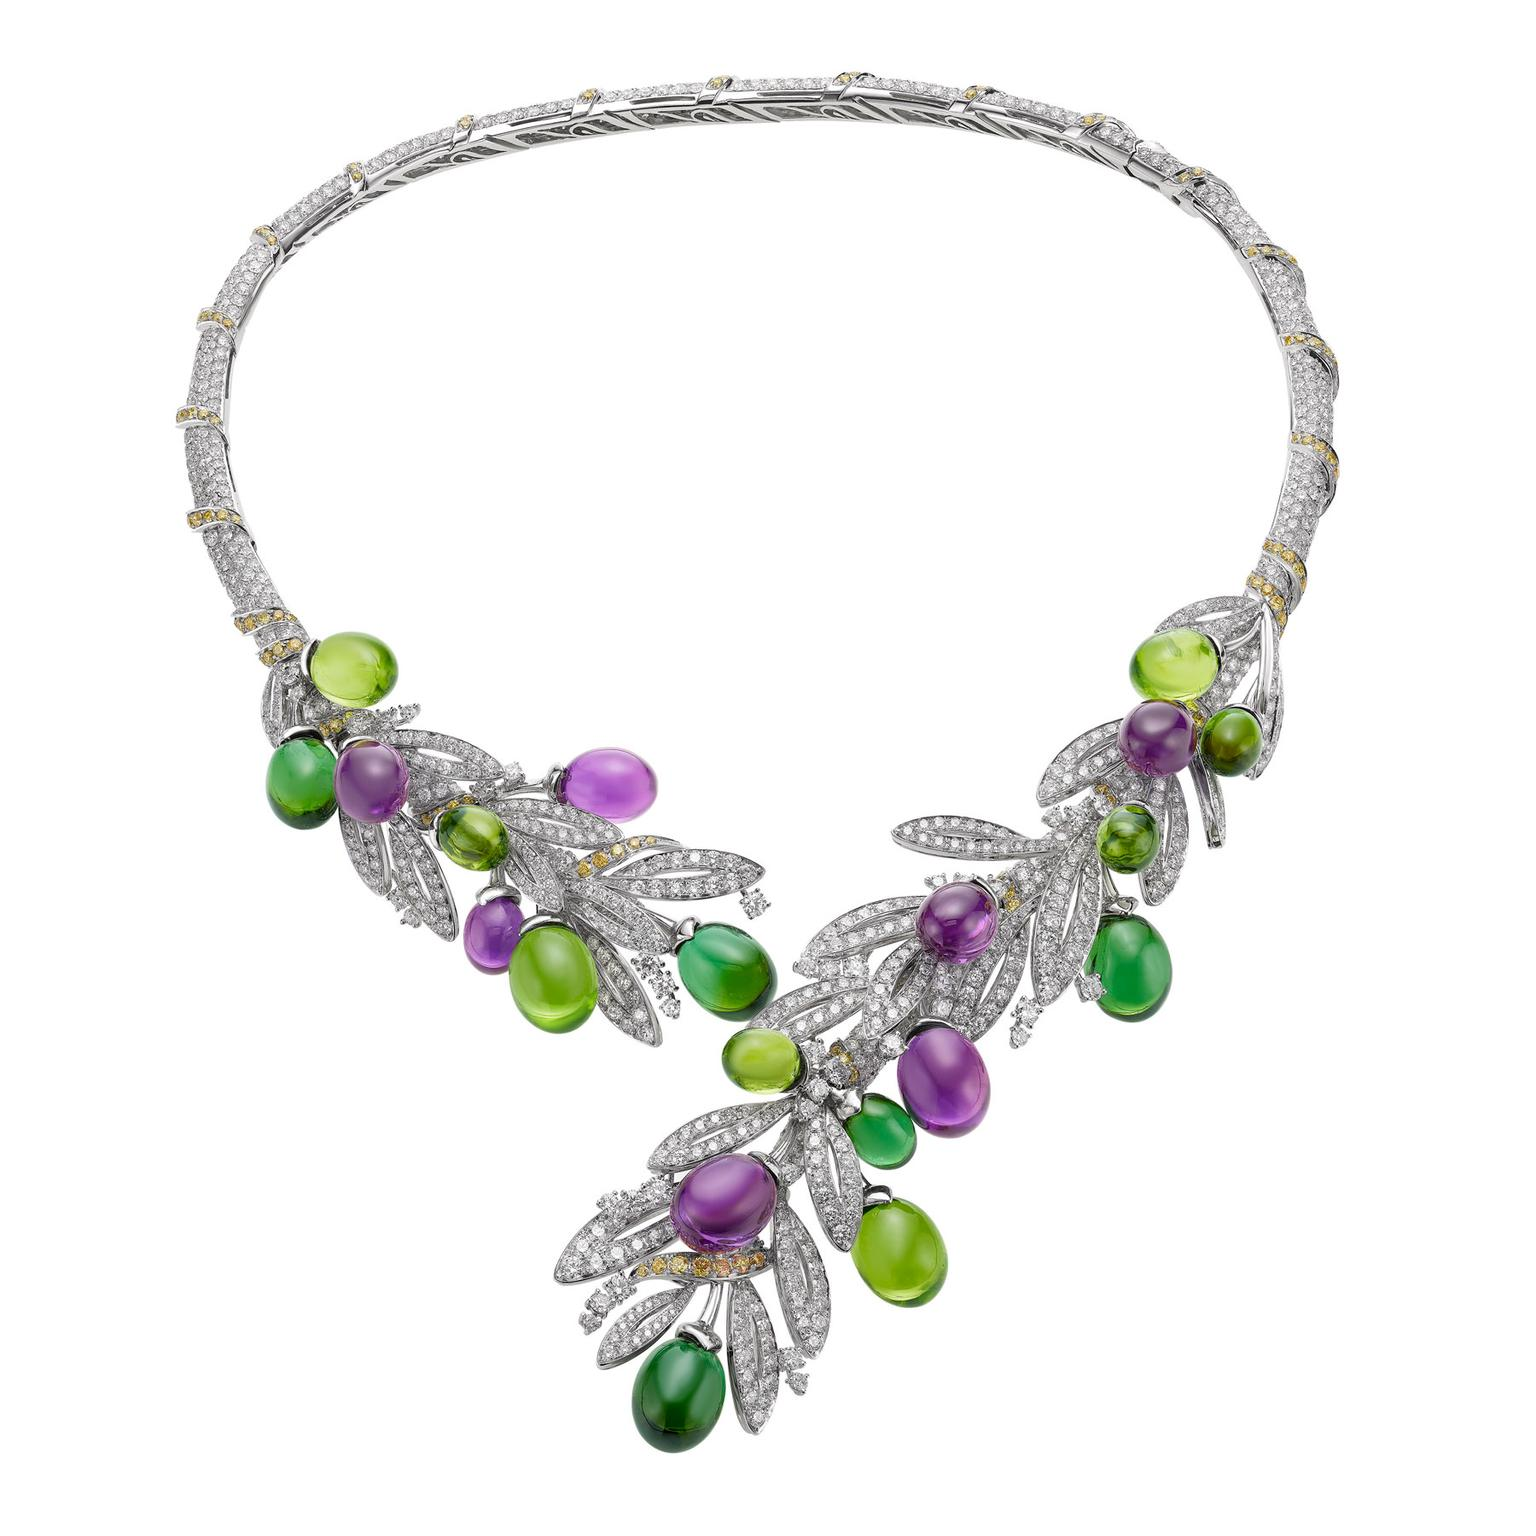 Bulgari Olive Festa necklace